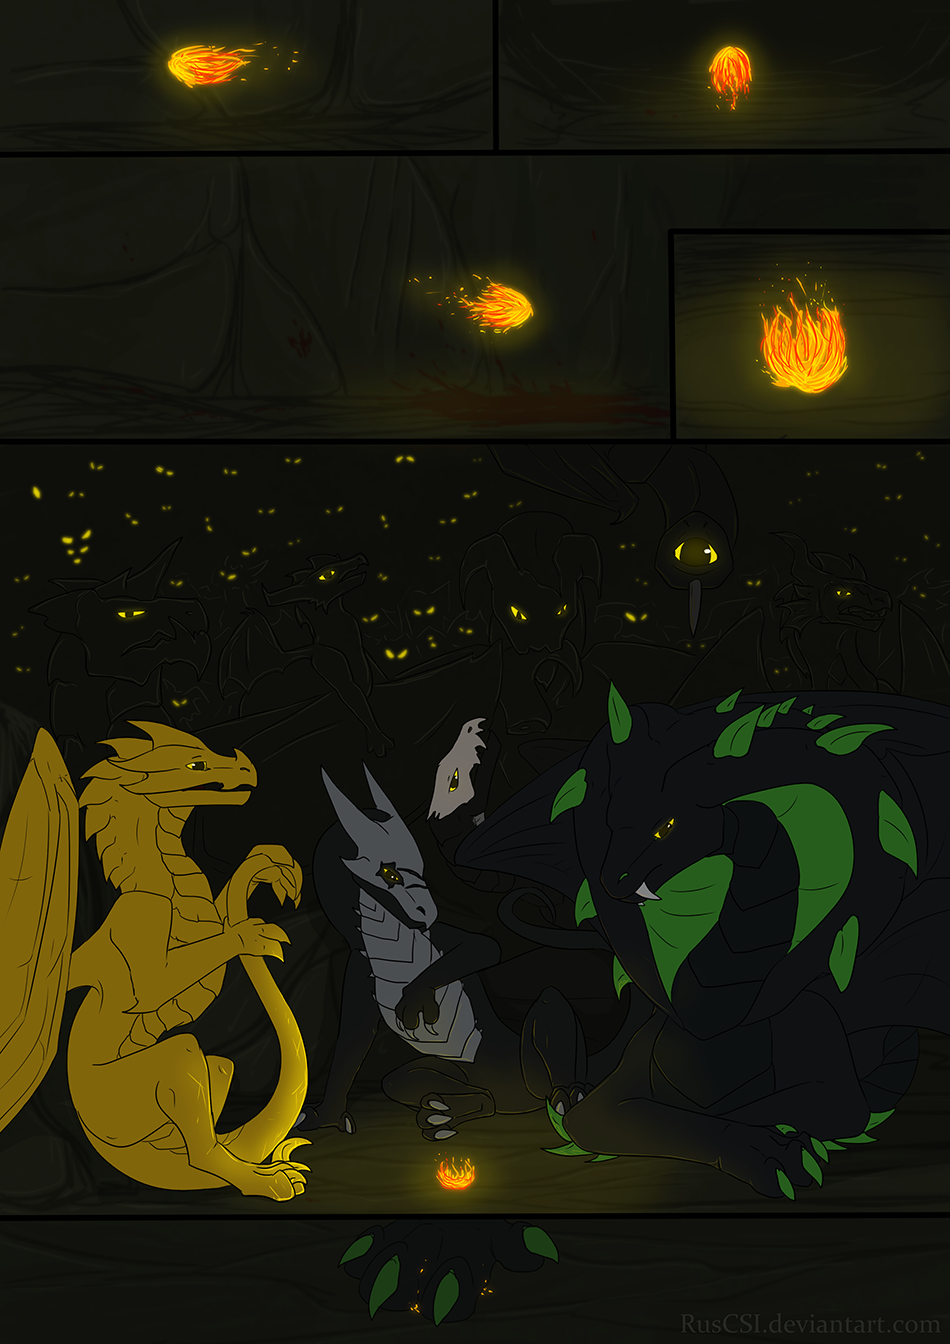 Courage of the cowardly dragon - page 33